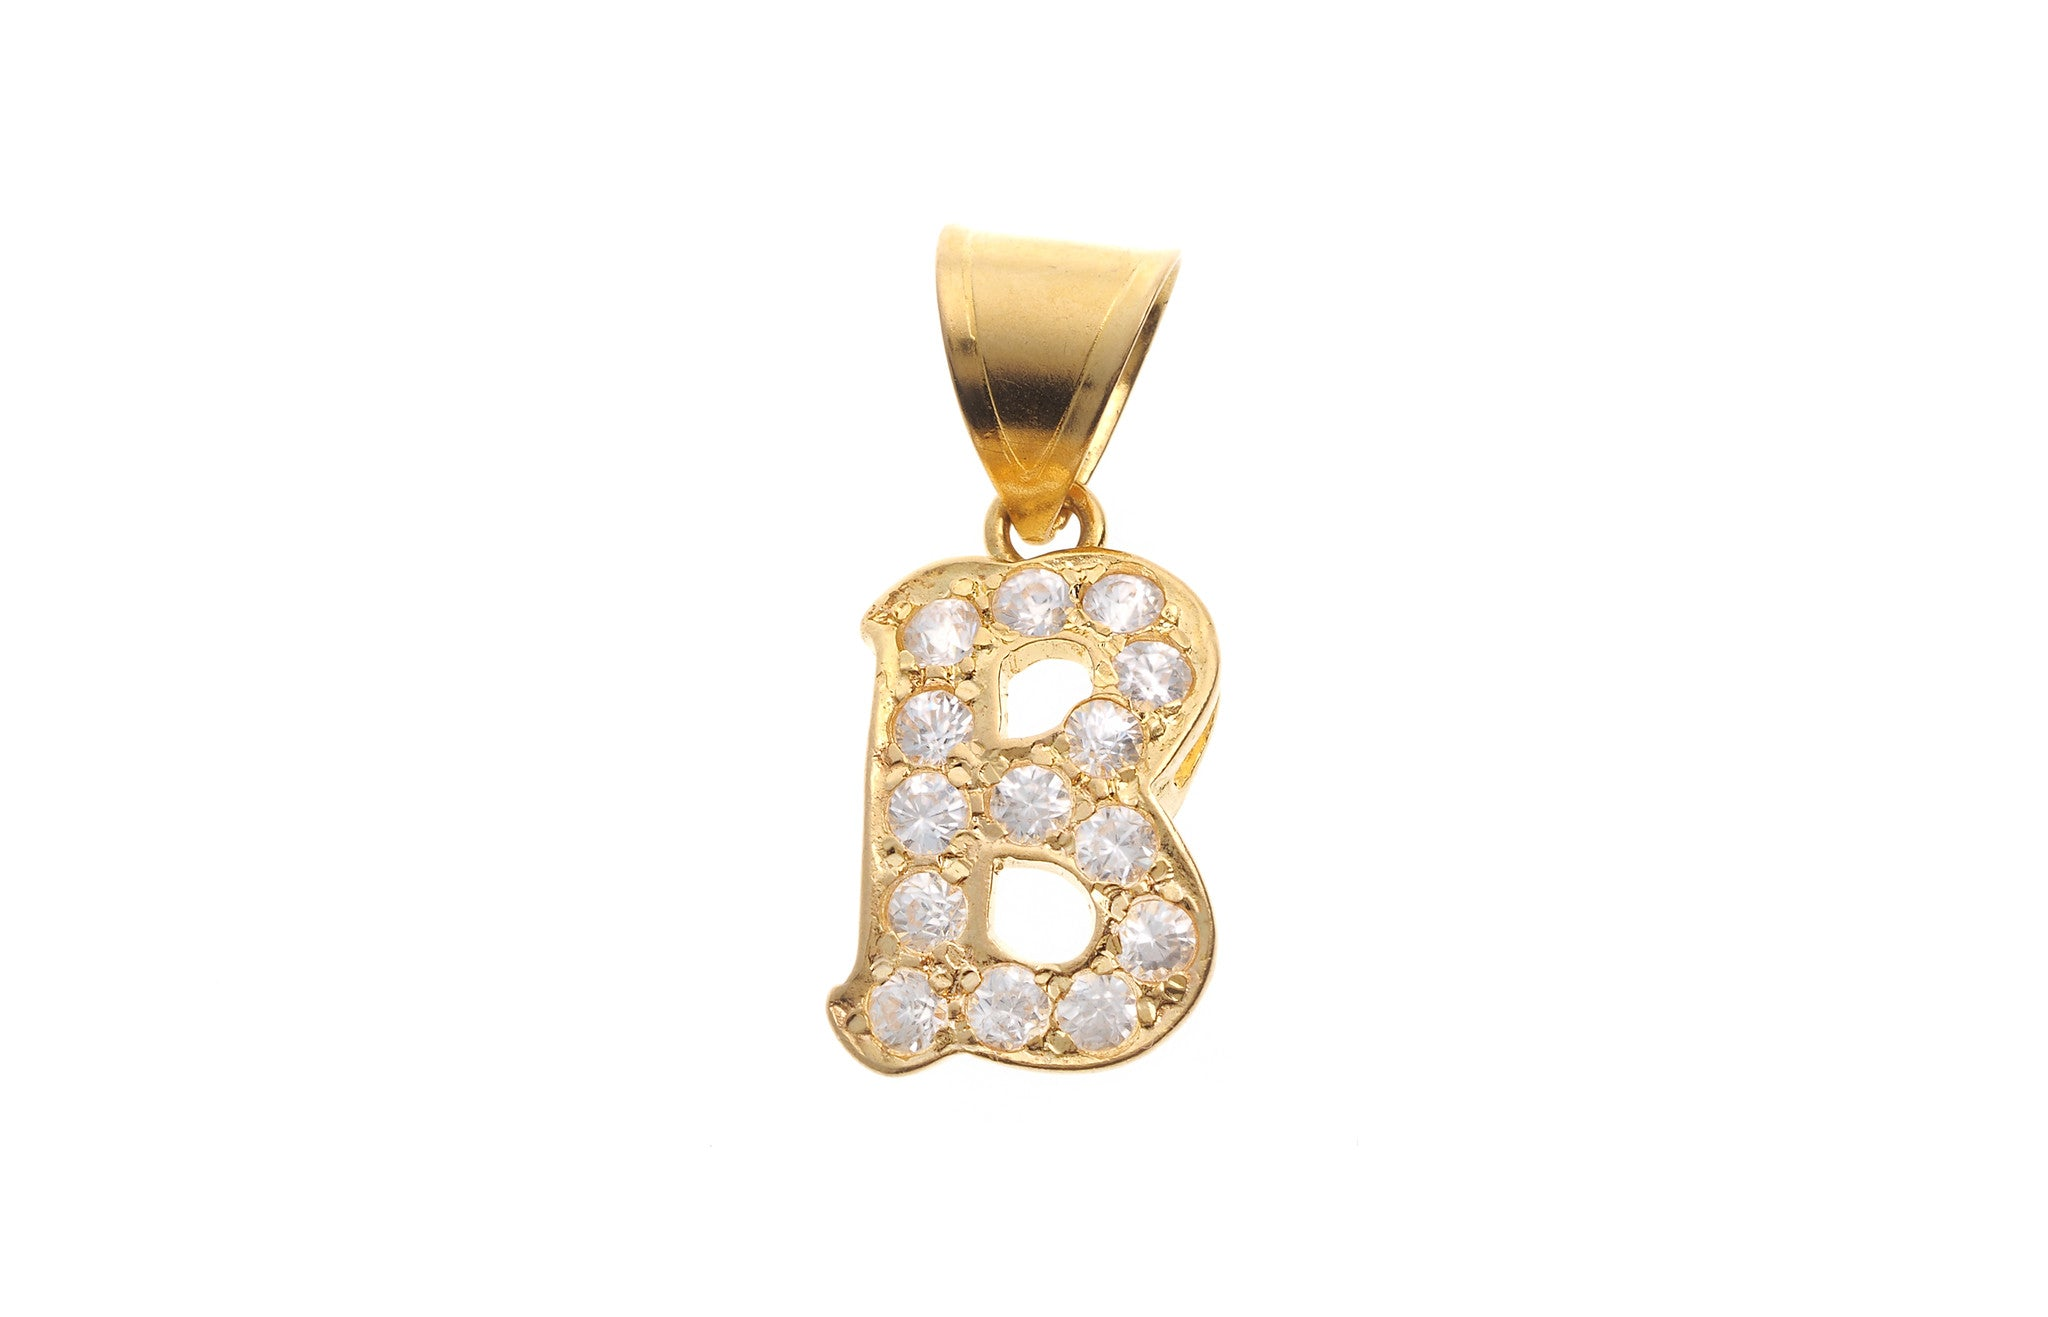 'B' Initial Pendant 22ct Yellow Gold Cubic Zirconia (1.9g) P-5599